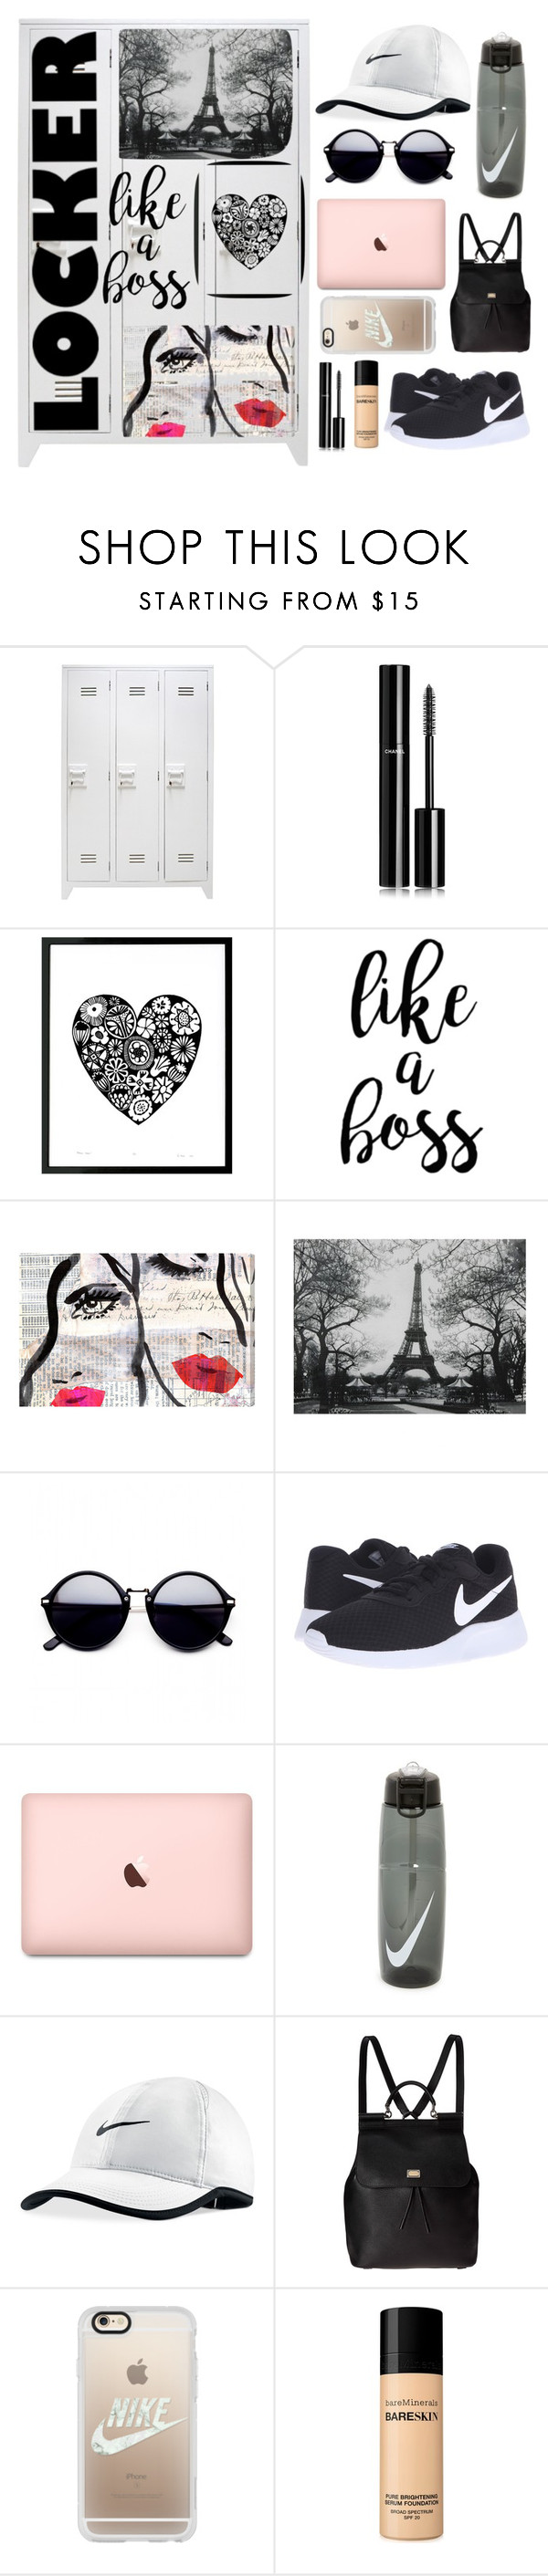 """""""Locker Decor"""" by rhiannonpsayer ❤ liked on Polyvore featuring interior, interiors, interior design, home, home decor, interior decorating, Chanel, Oliver Gal Artist Co., NIKE and Dolce&Gabbana"""